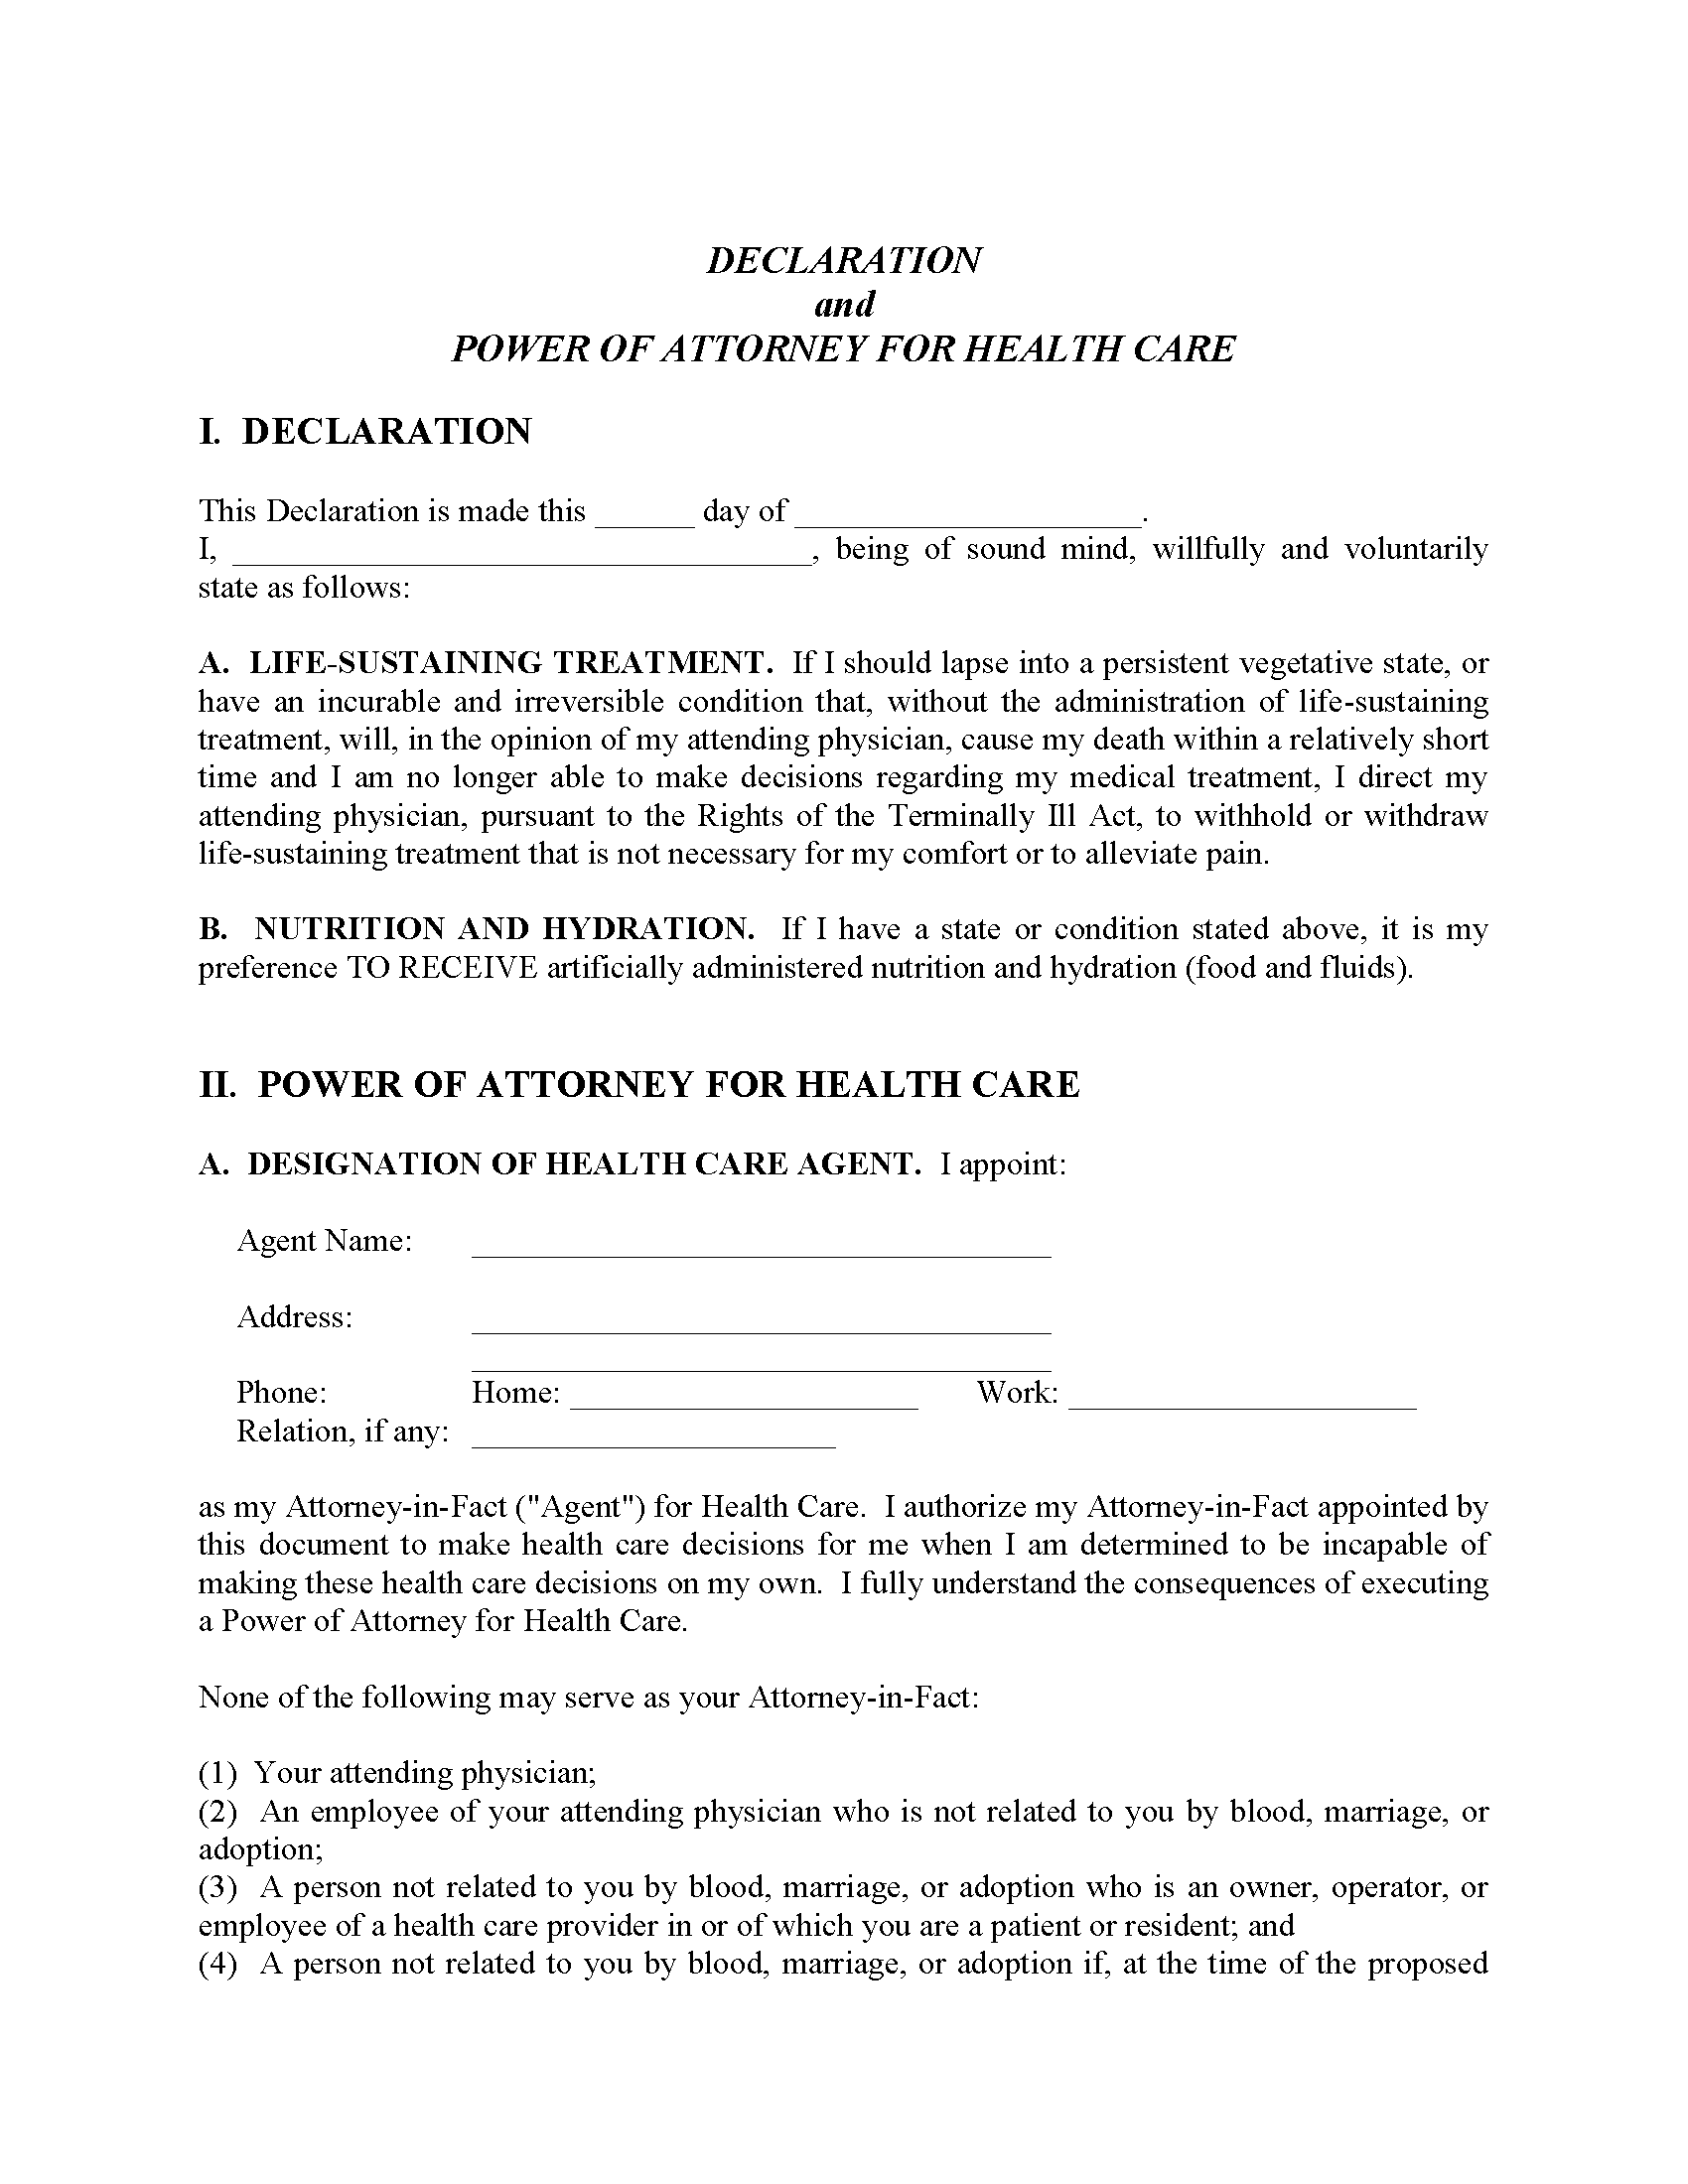 Georgia Living Will Form Free Printable Legal Forms